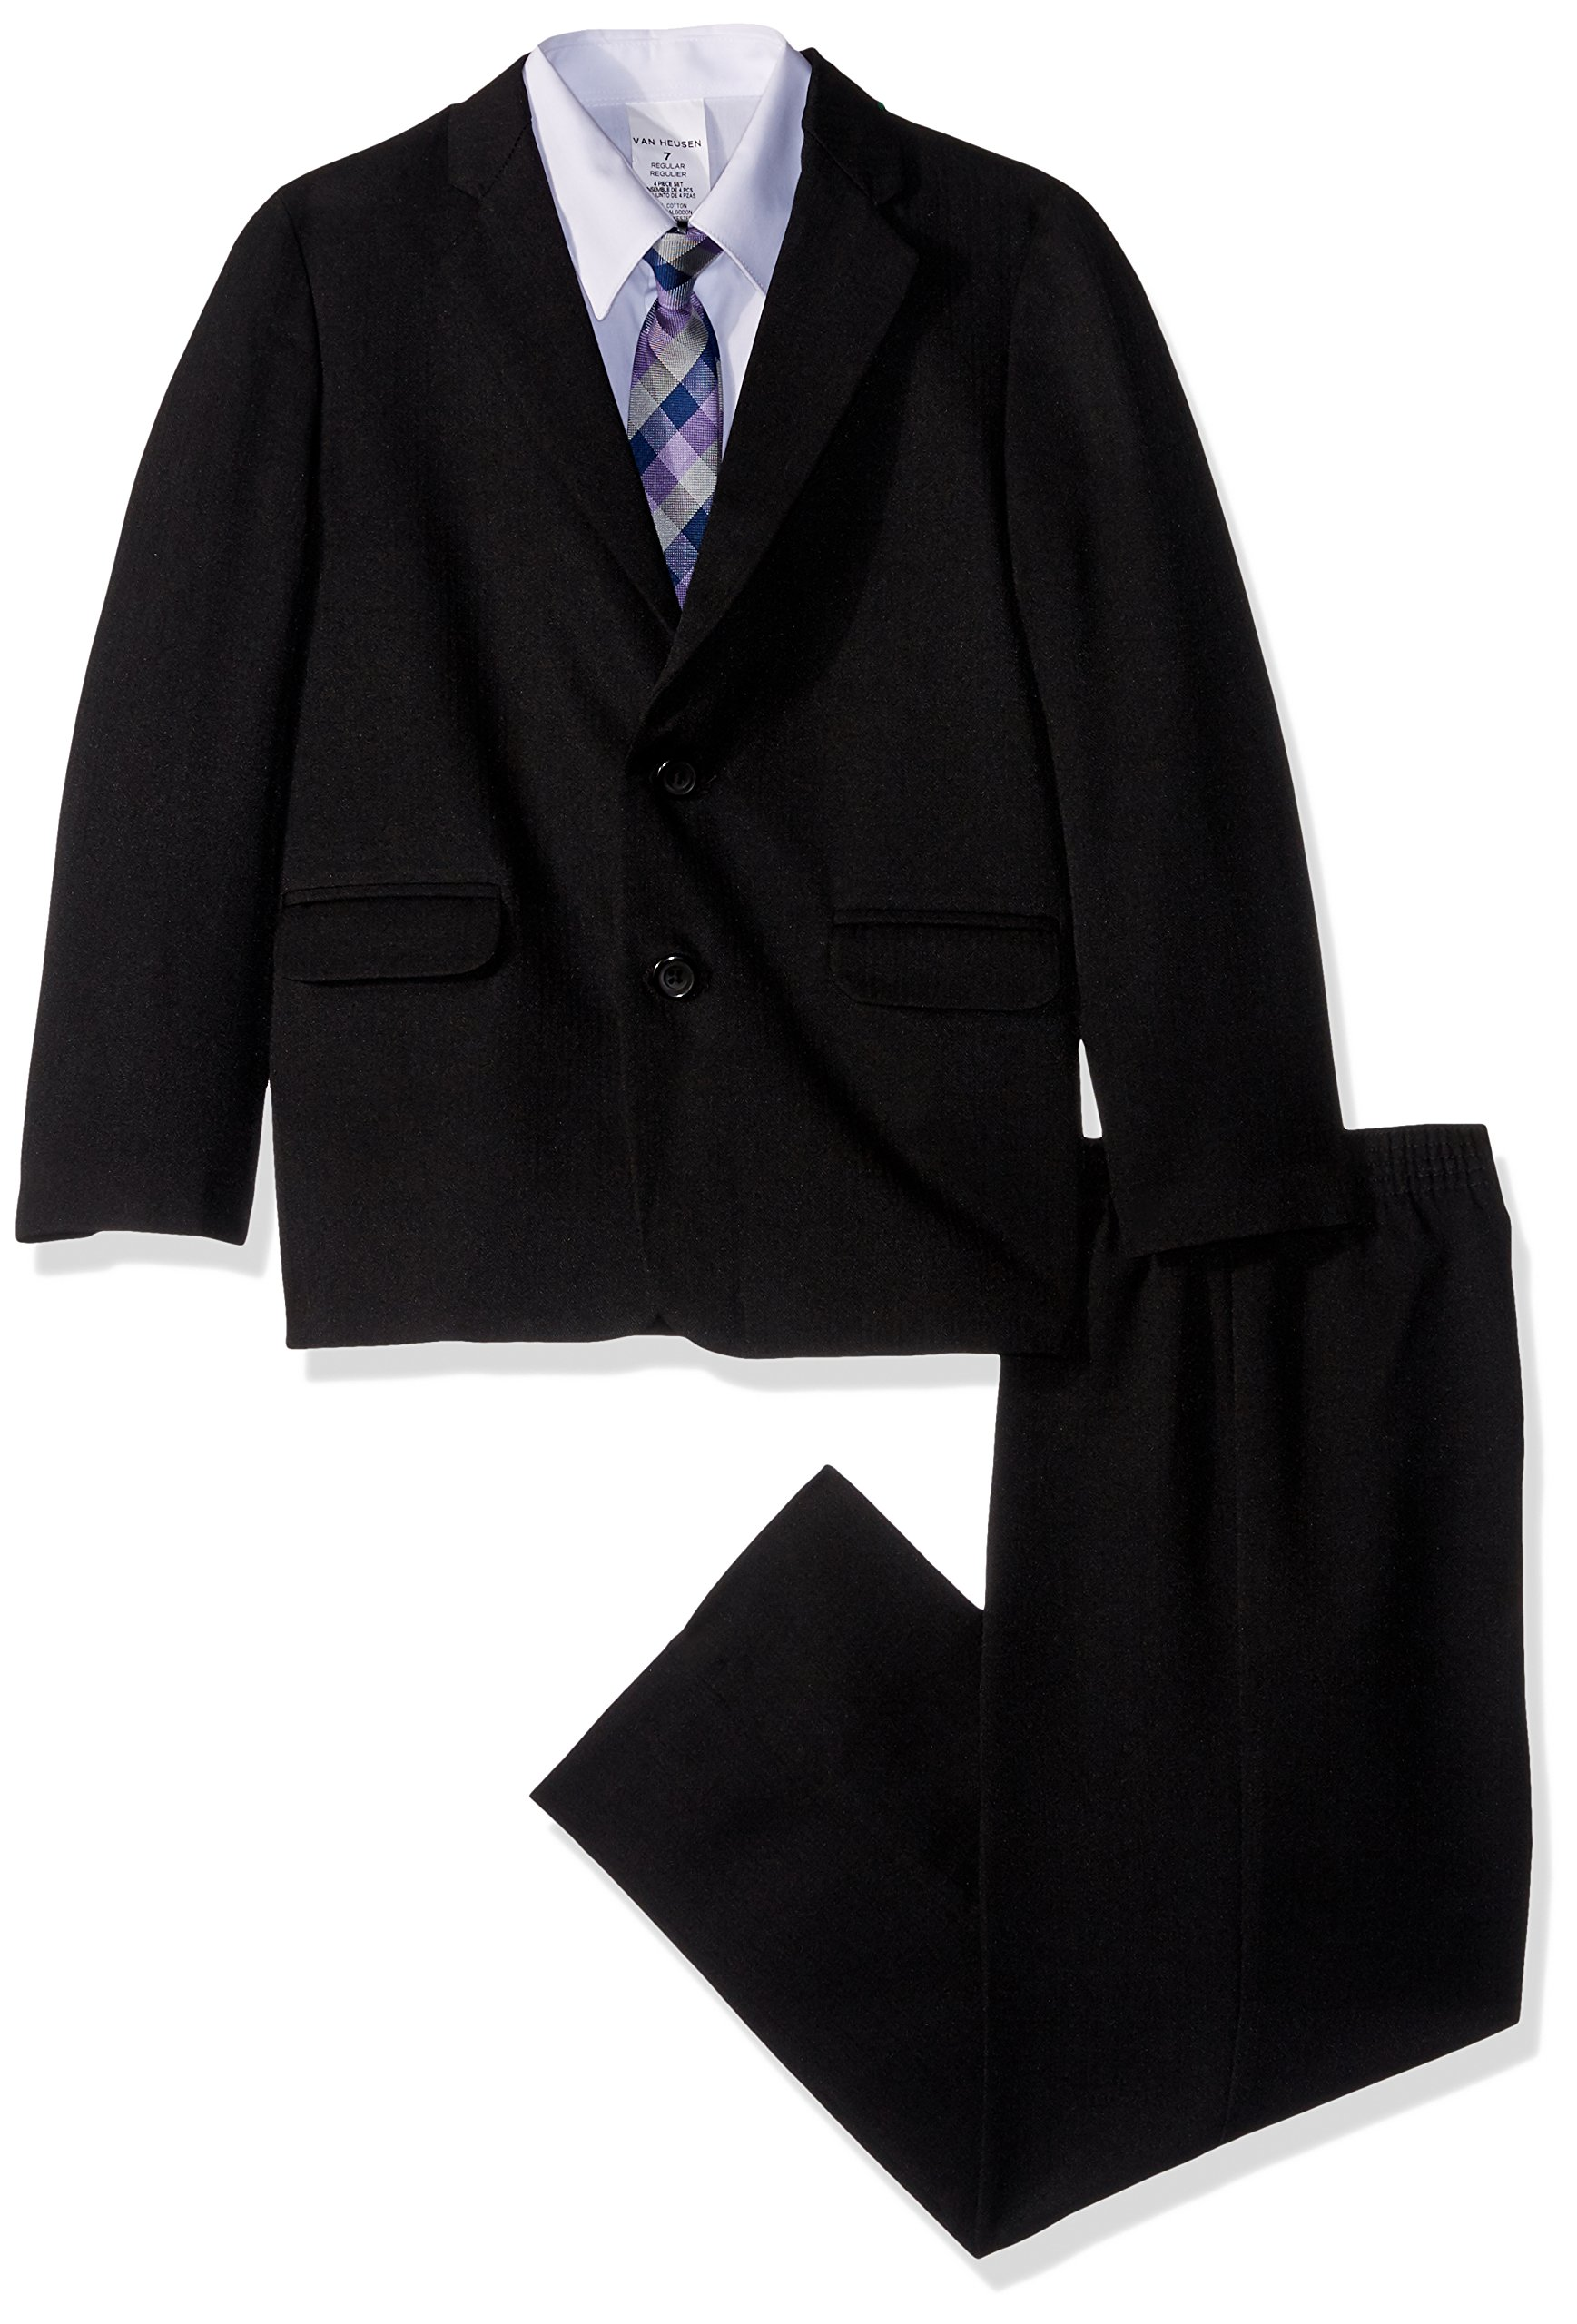 Van Heusen Little Boys' Four Piece Suit Set, Black Herringbone, 5